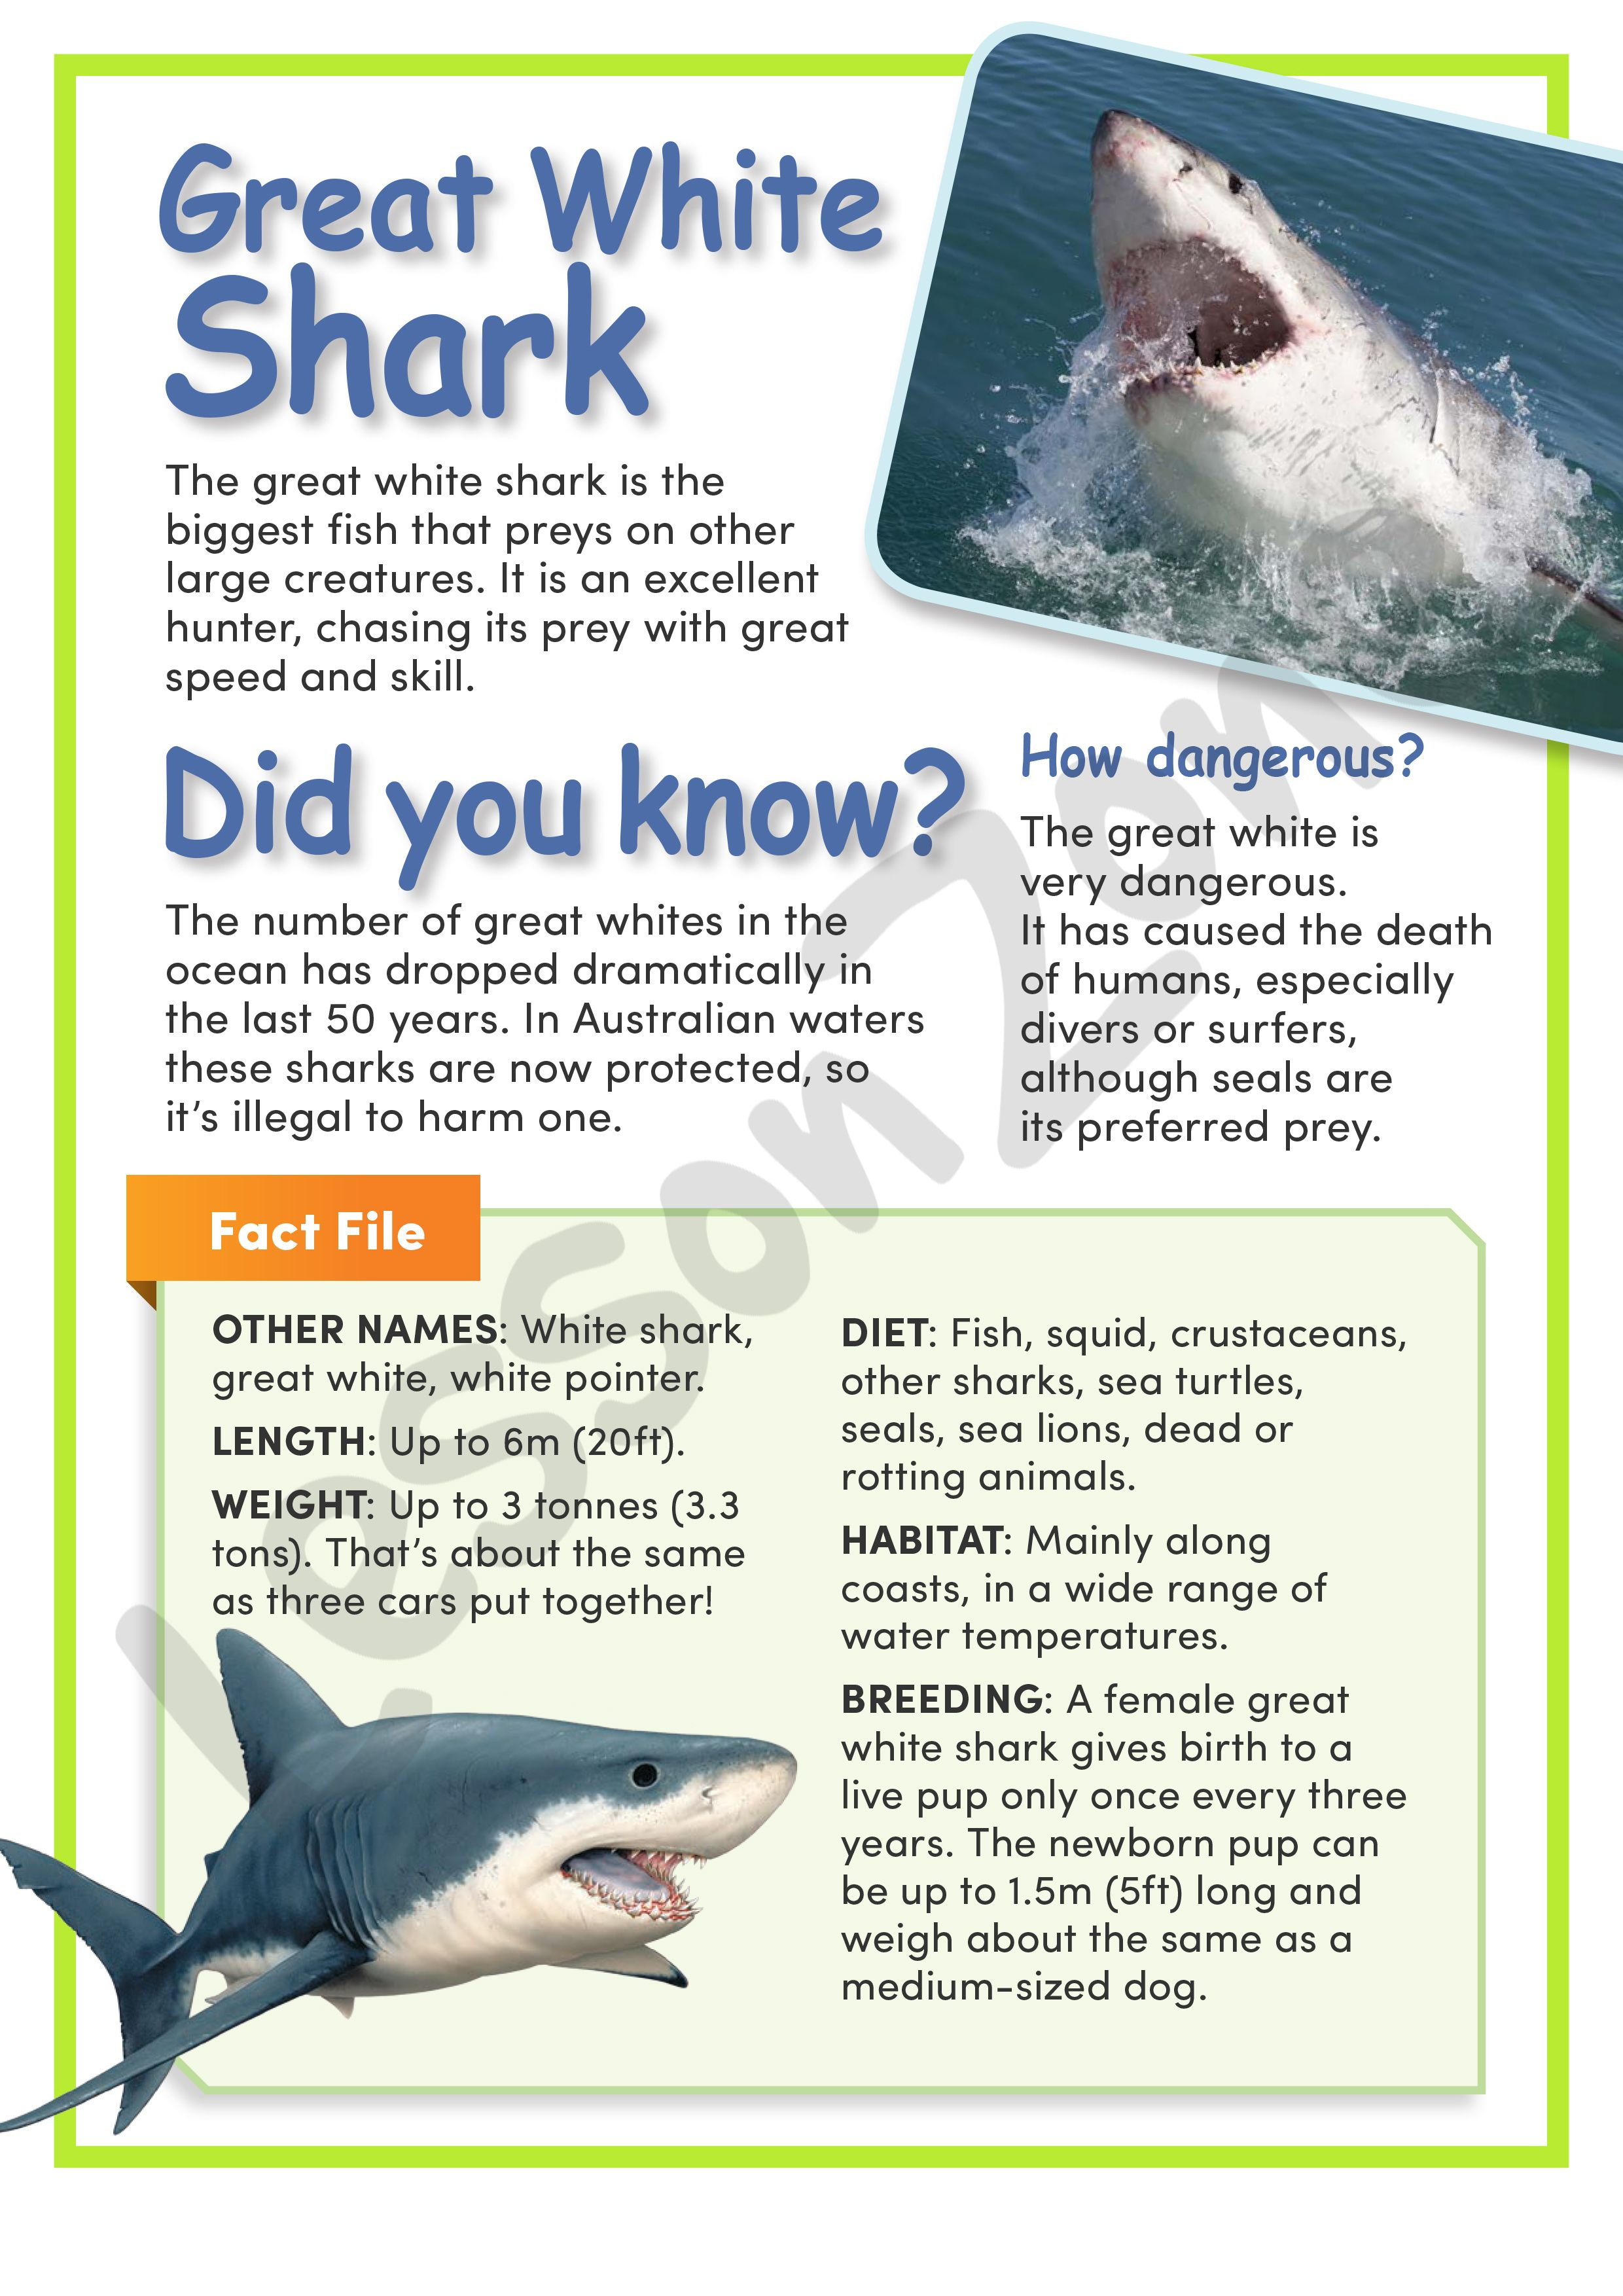 This Article Great White Shark Provides Information